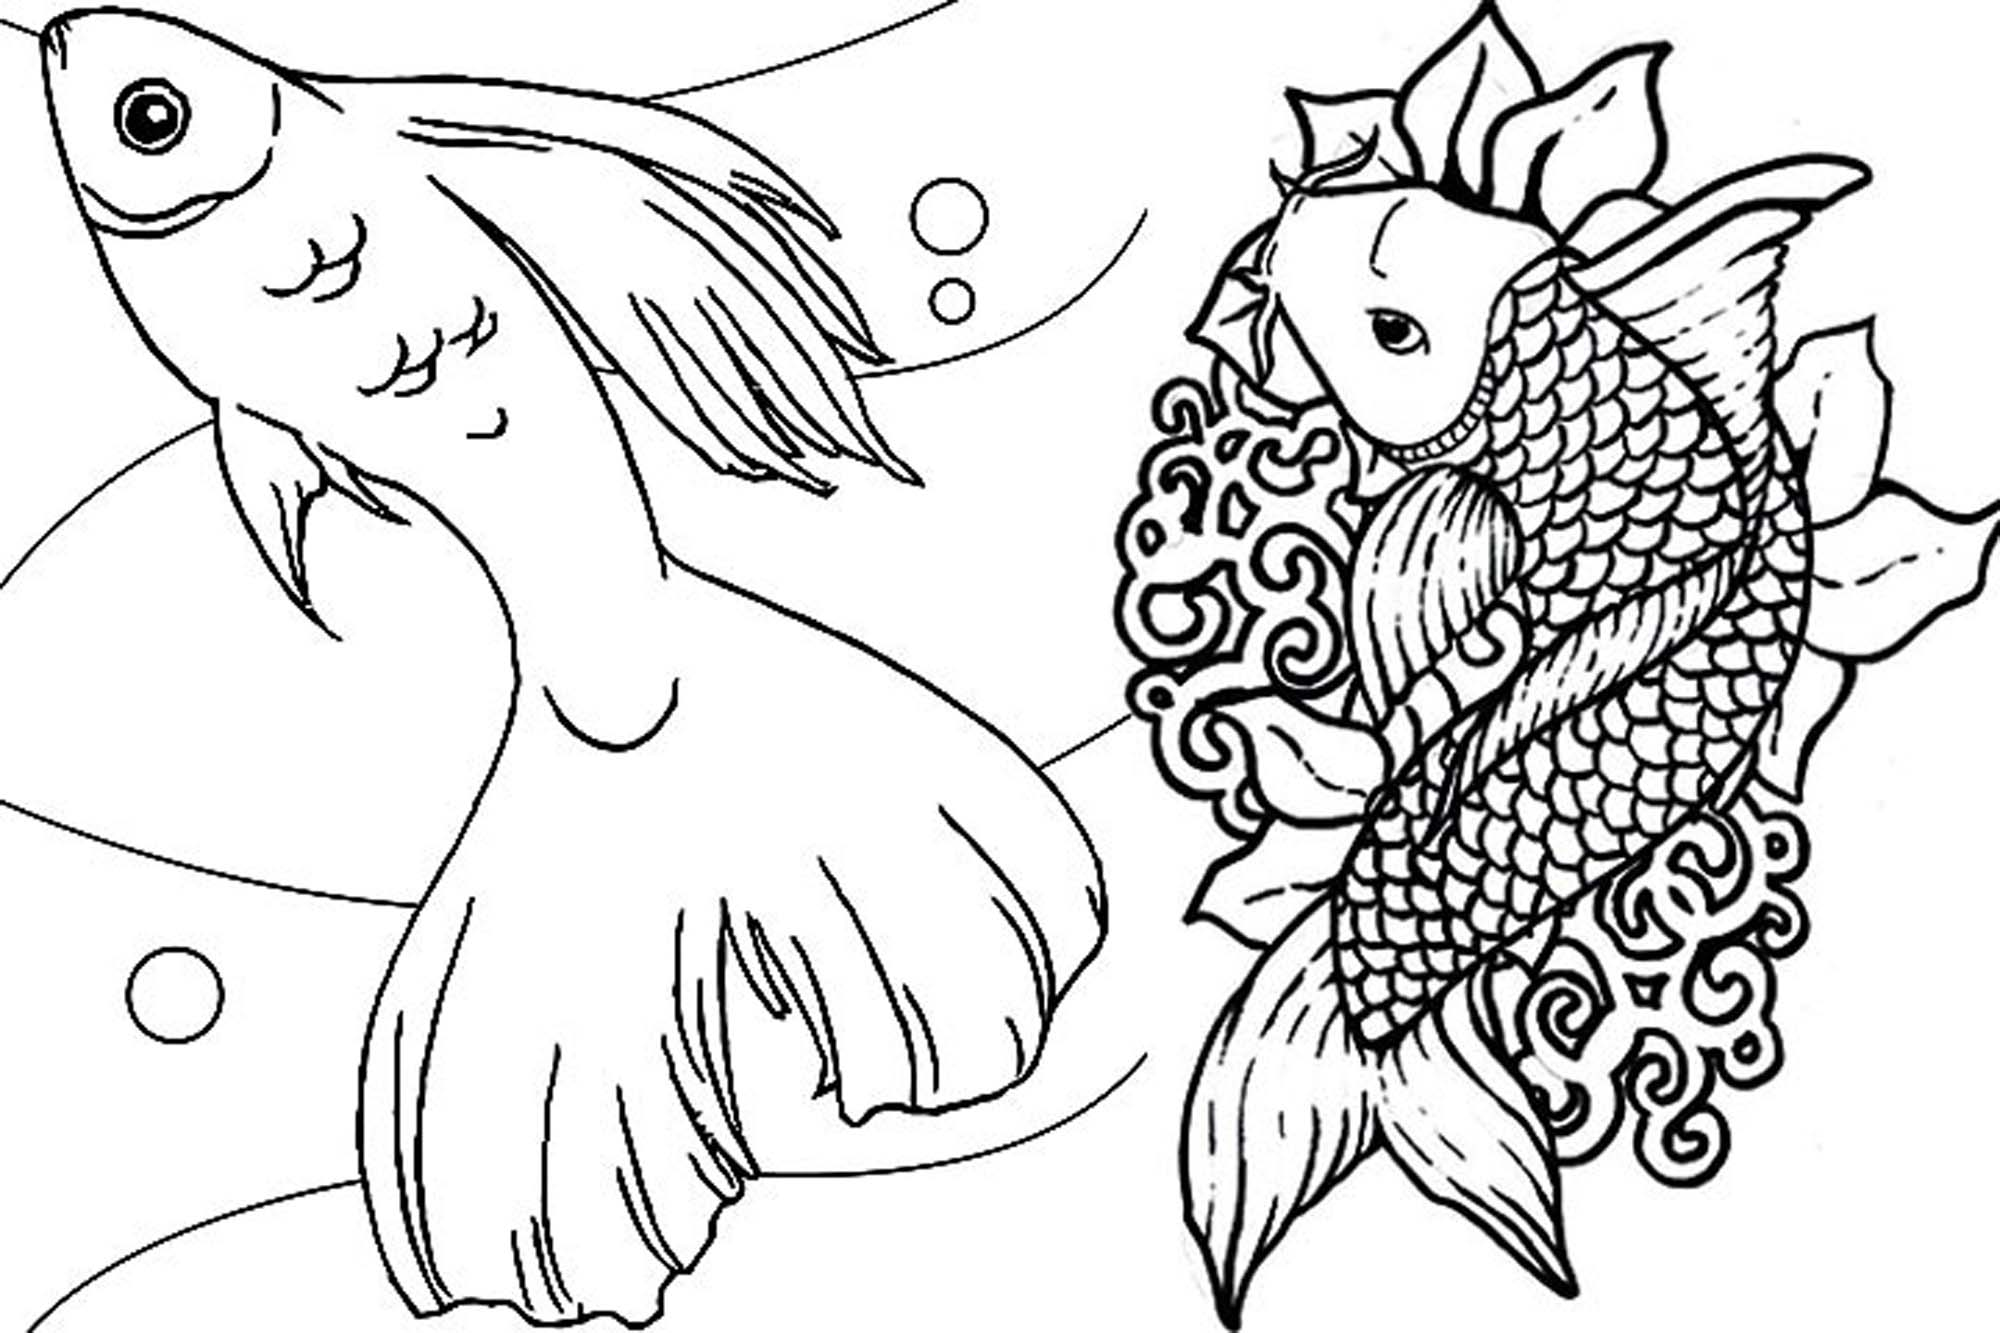 2000x1333 Remarkable Football Fish Coloring Page Japanese Koi Pages For Kids